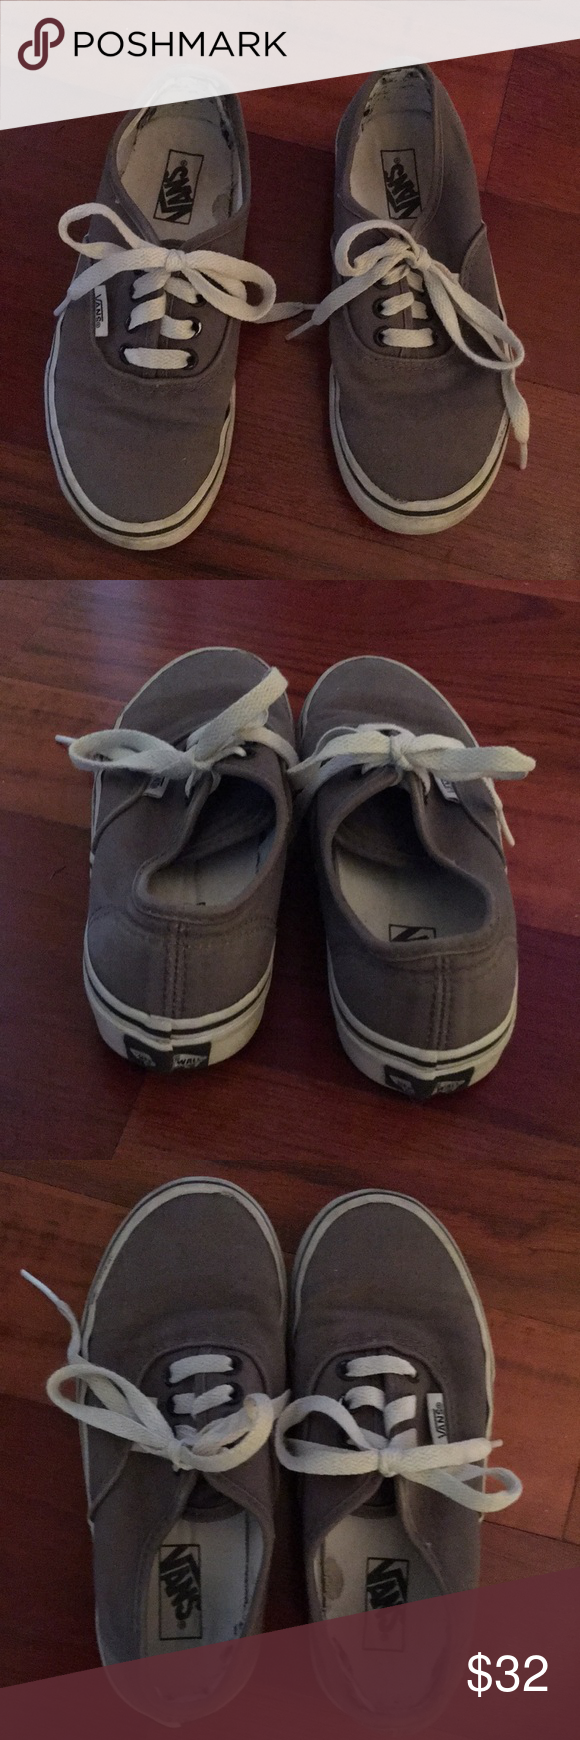 Kids Vans Size 1 Worn Once! Clothing, Shoes & Accessories